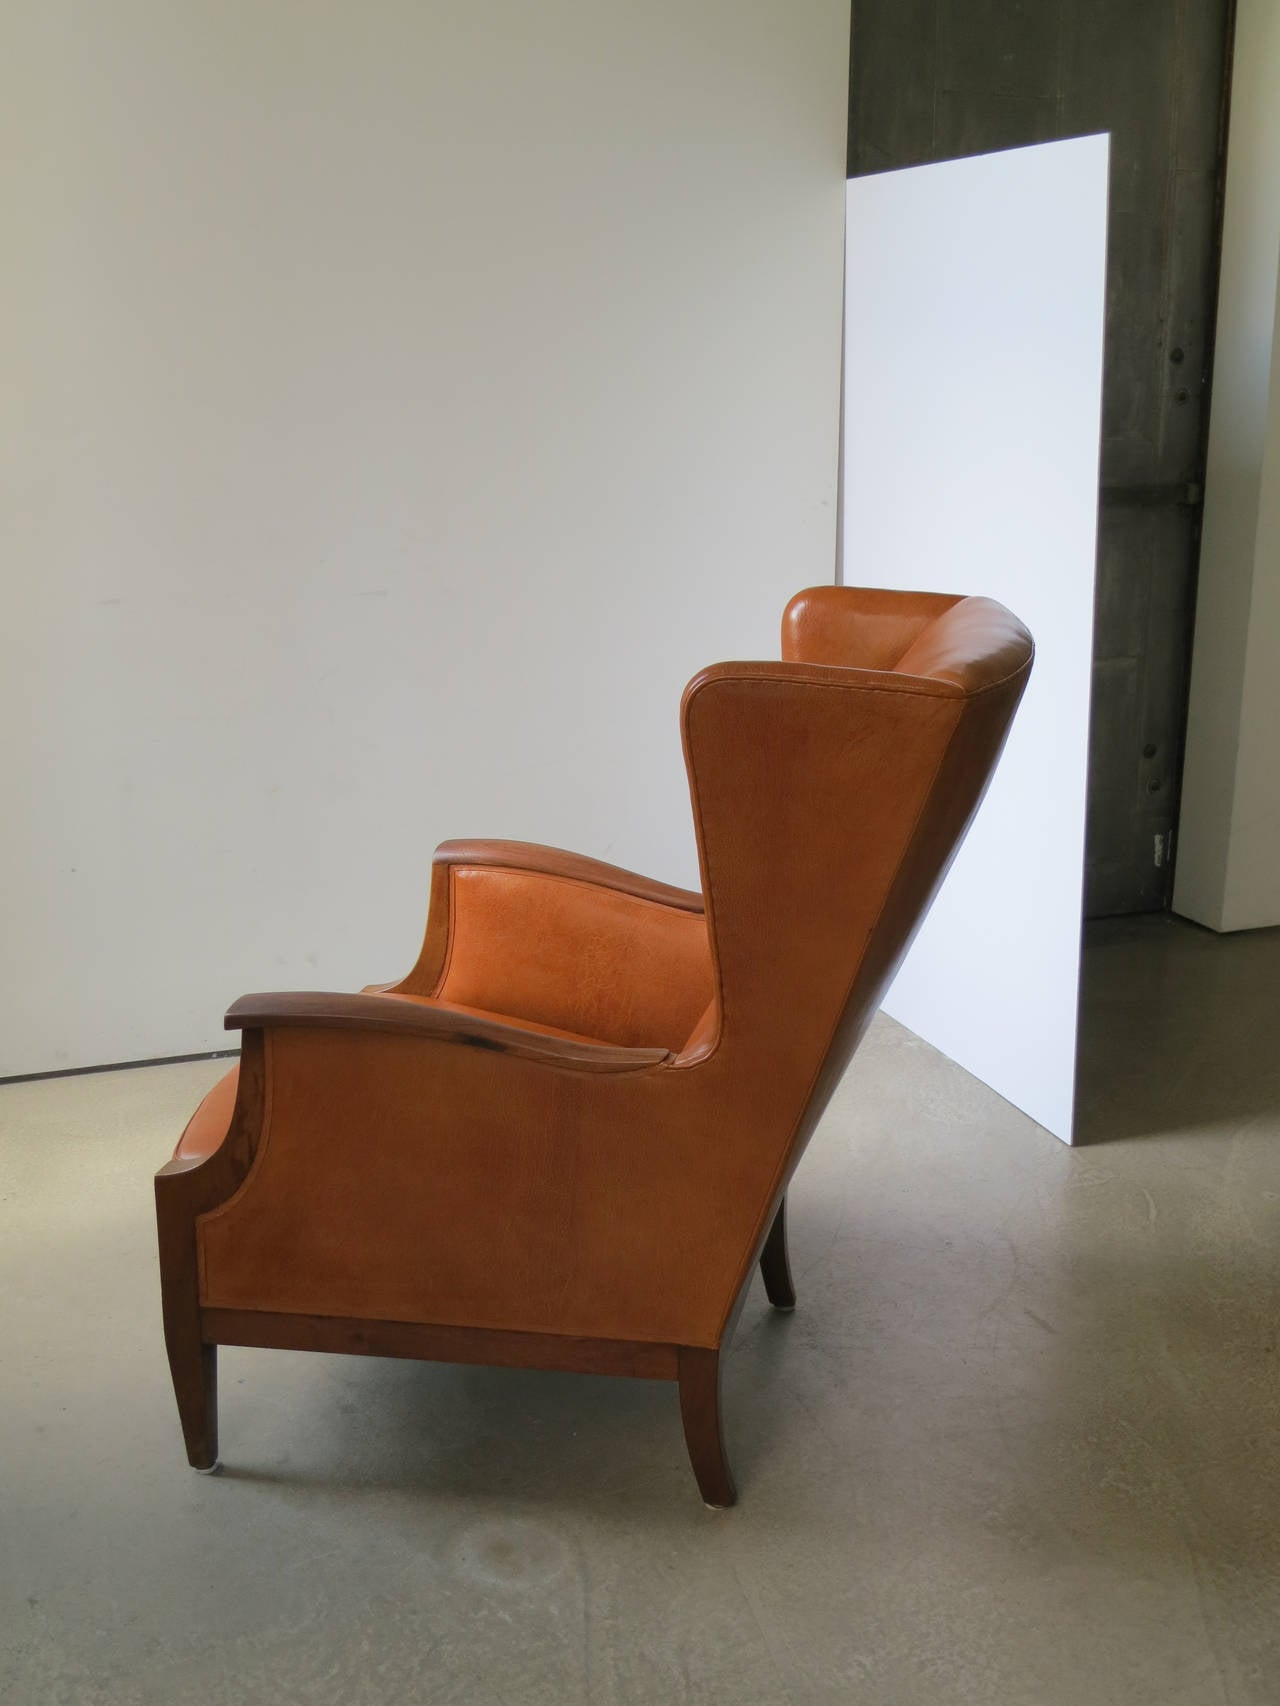 1930s Wingback Chair in Nigerian Leather and Cuban Mahogany by Frits Henningsen 3